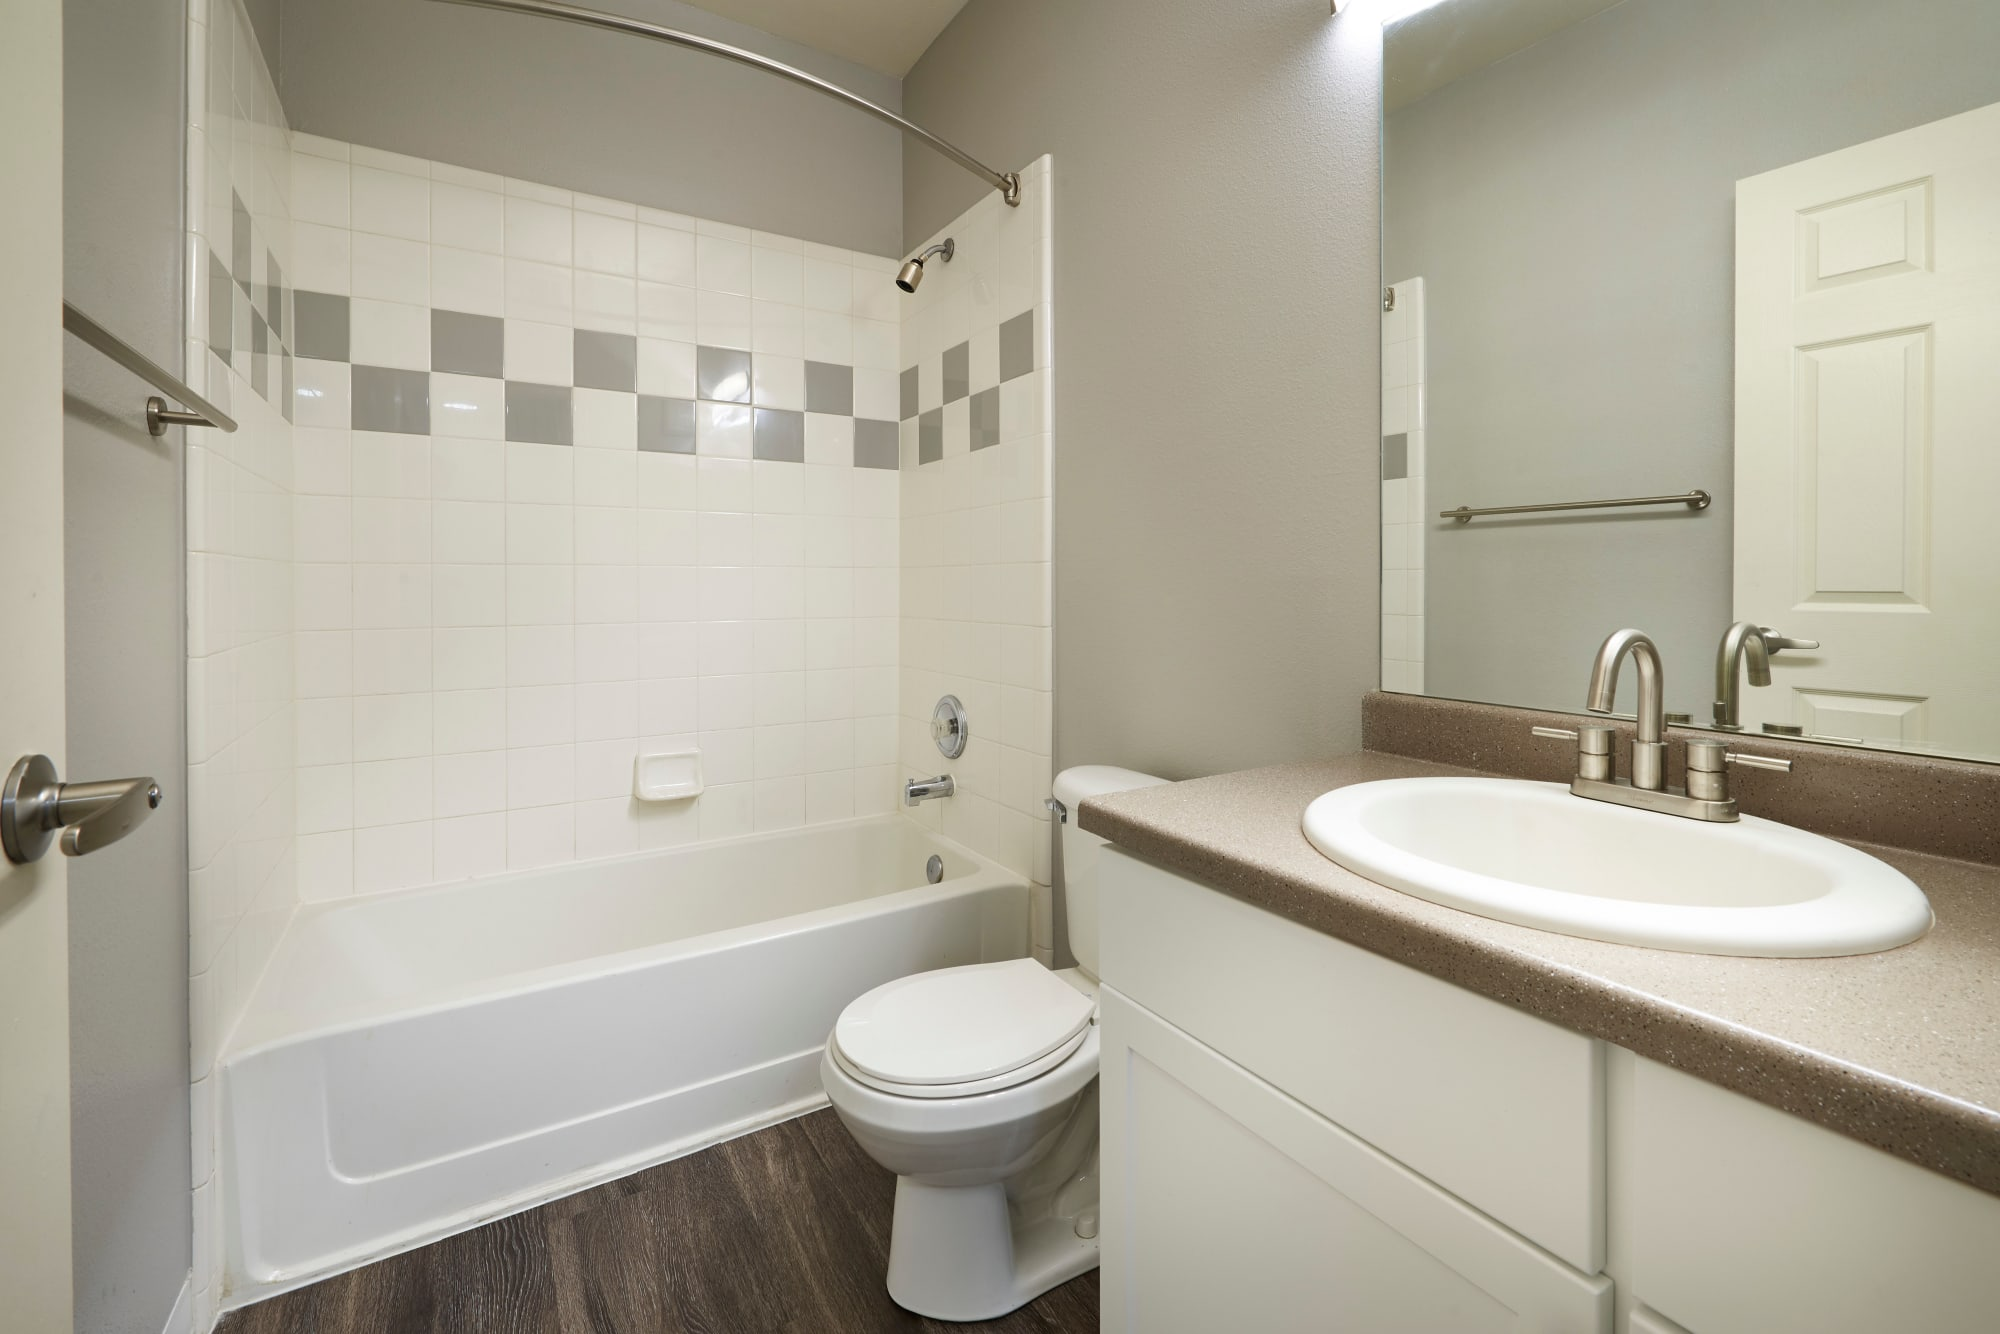 bathroom and tub at Westridge Apartments in Aurora, CO